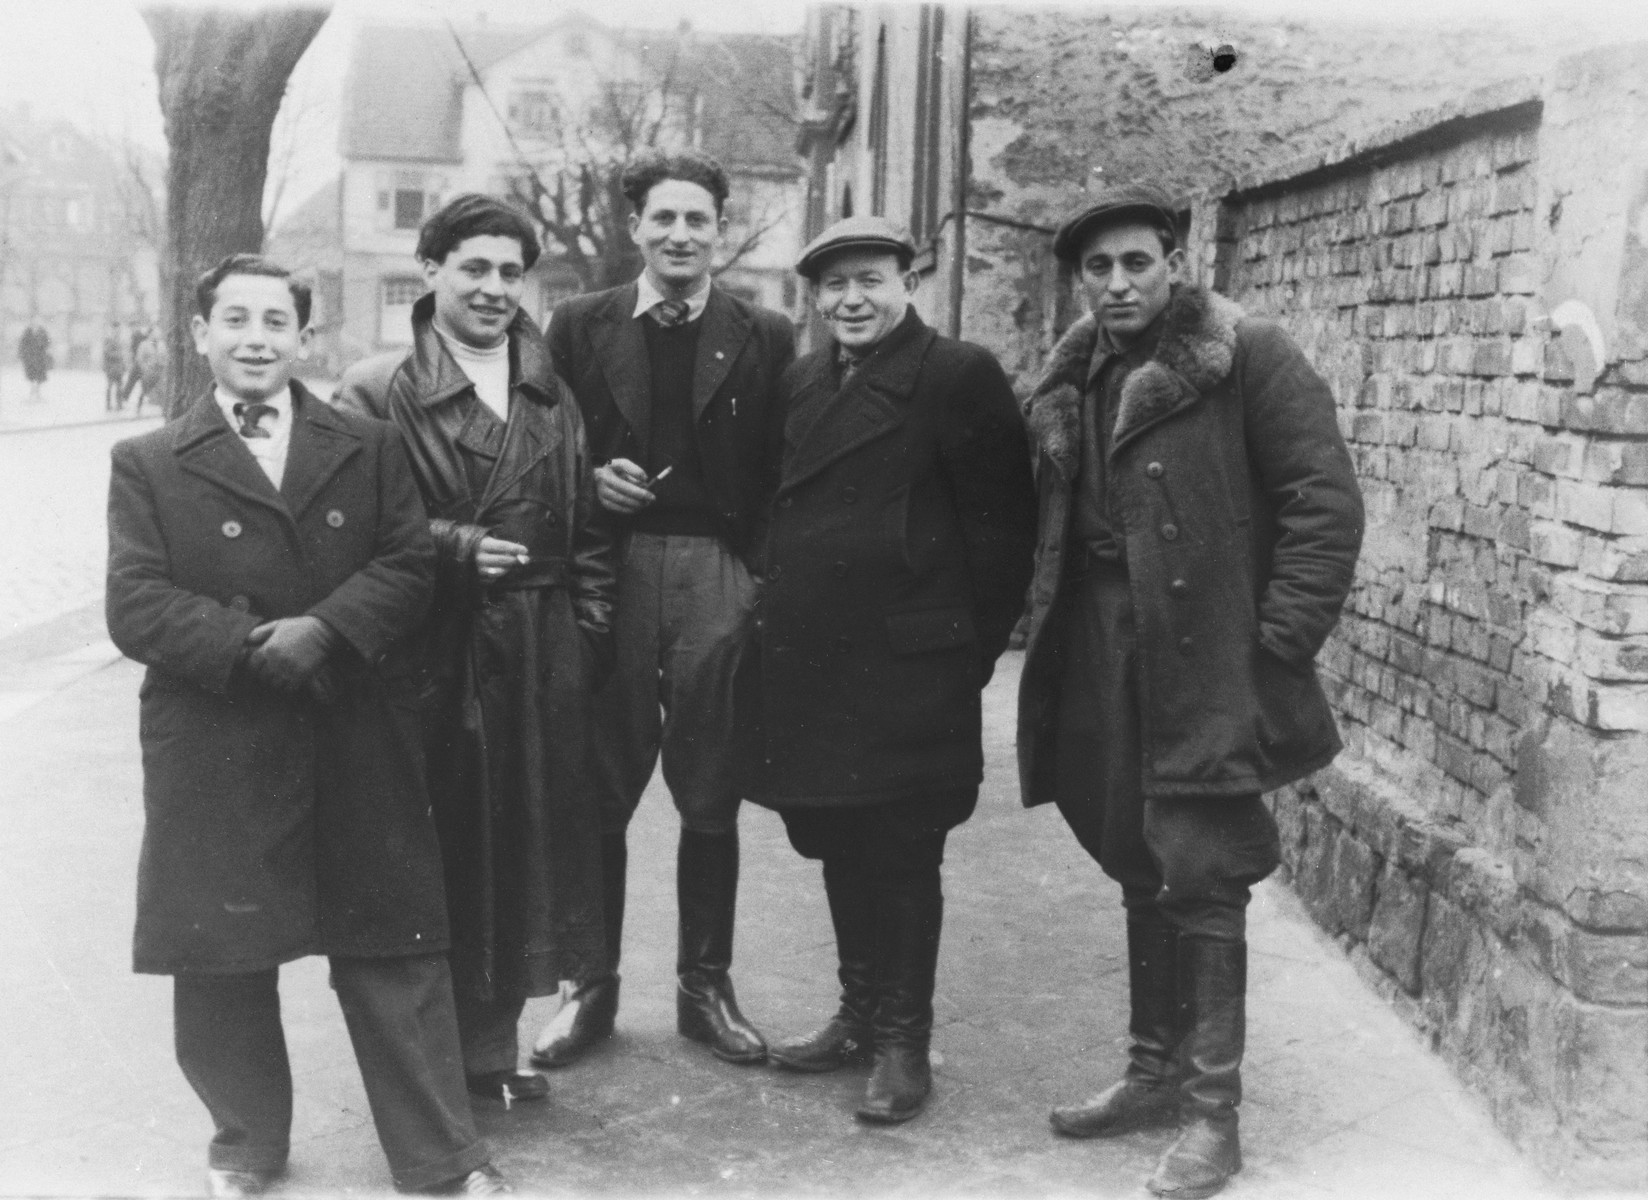 A group of young Jewish DPs pose on a street in the Lampertheim displaced persons camp.  Among those pictured is Izak Lachter (far right).